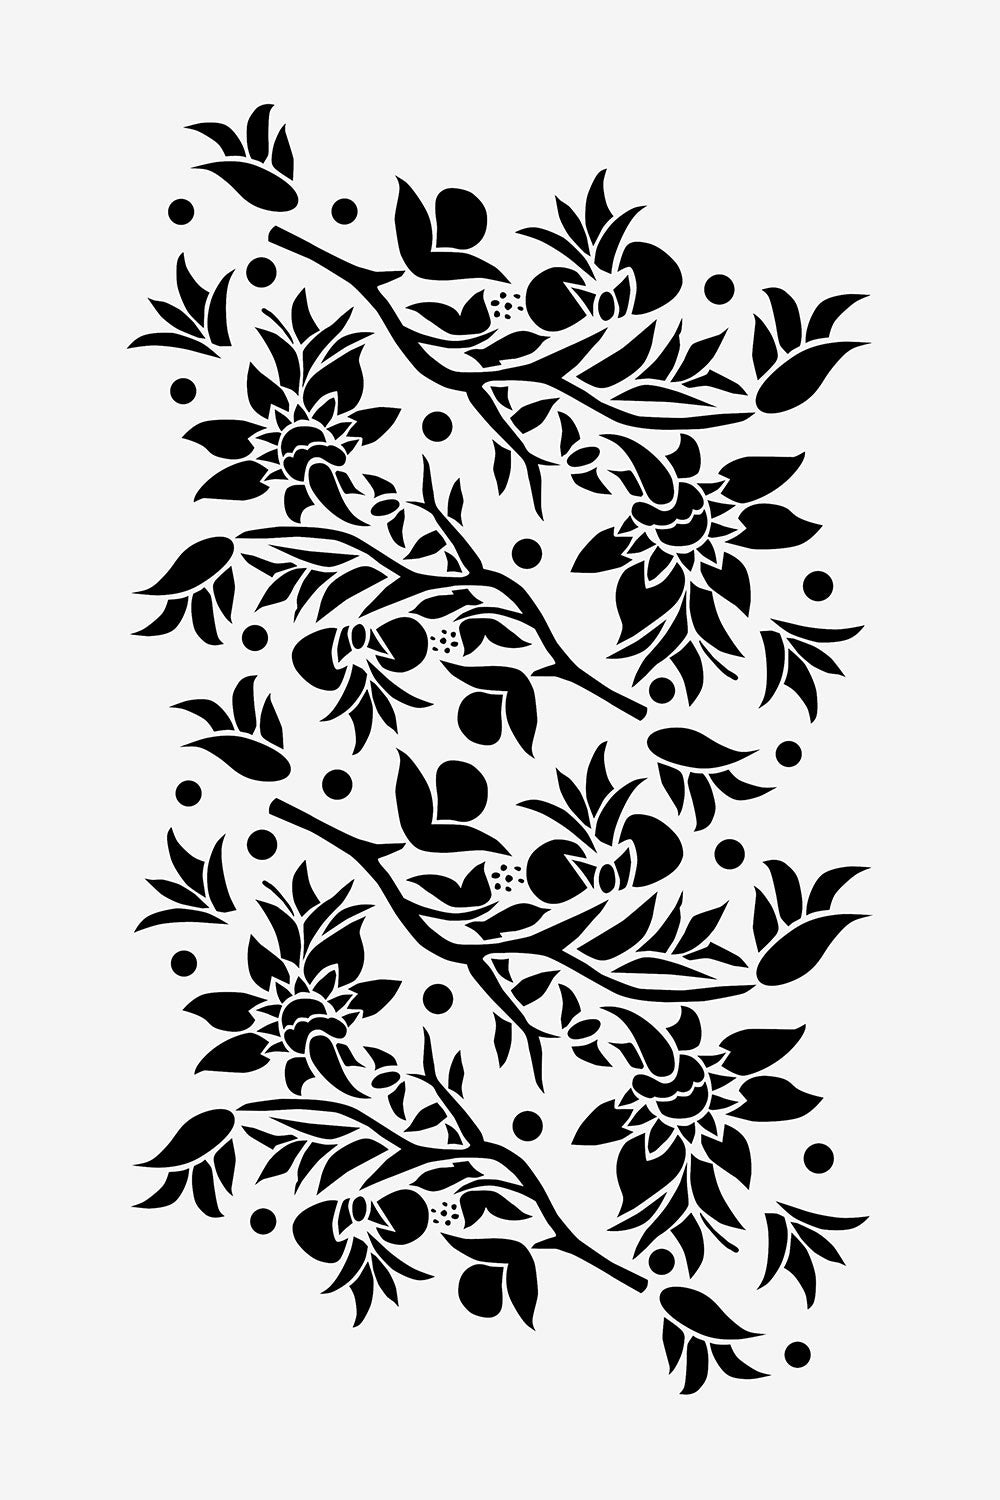 The School of Making Large Paradise Flower Stencil Floral Stencil Design for Hand-Painted DIY Clothing Projects